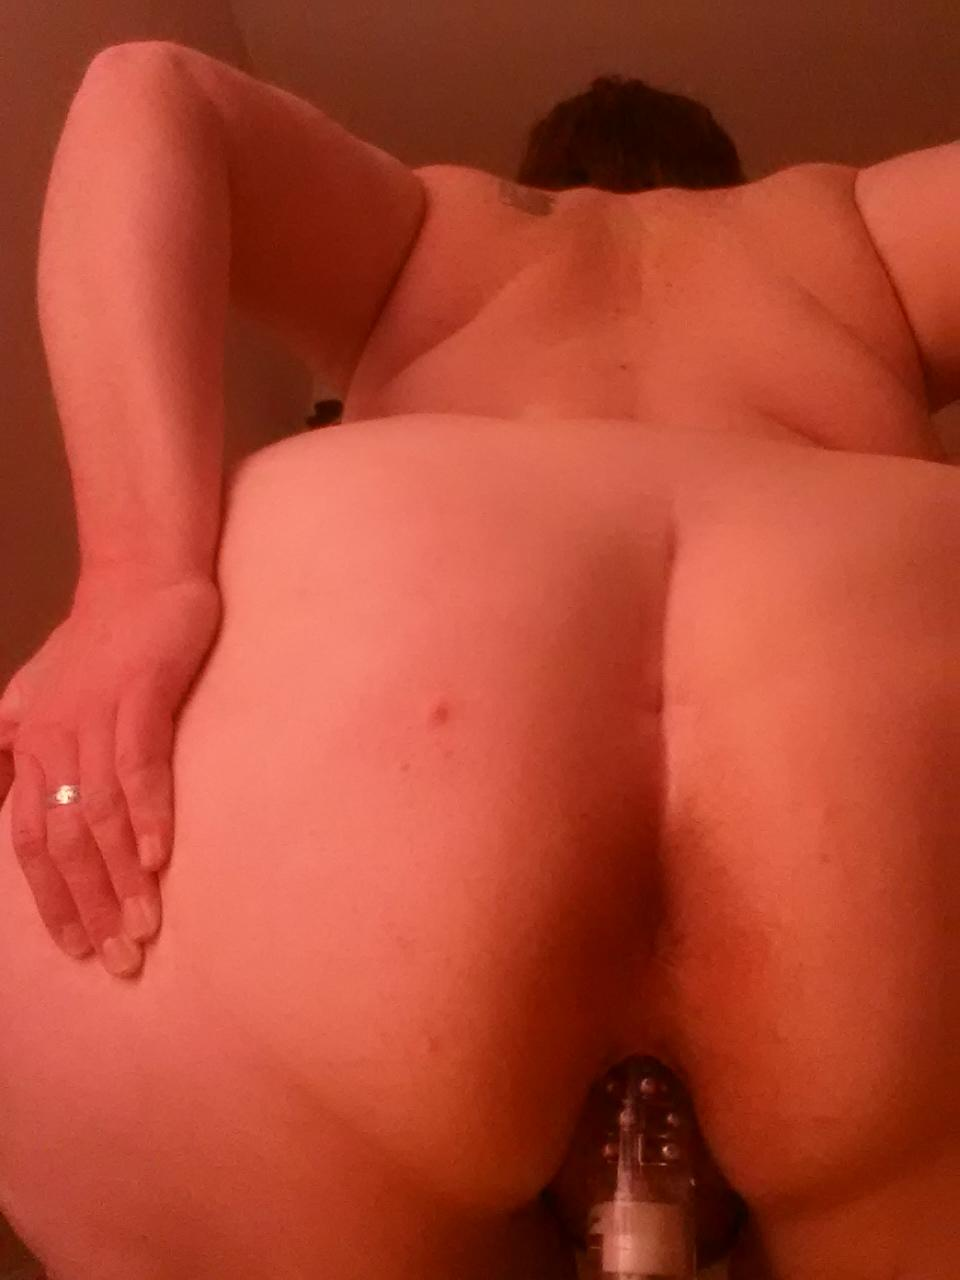 Vocal Ssbbw Bbw Squirts With Wand Solo